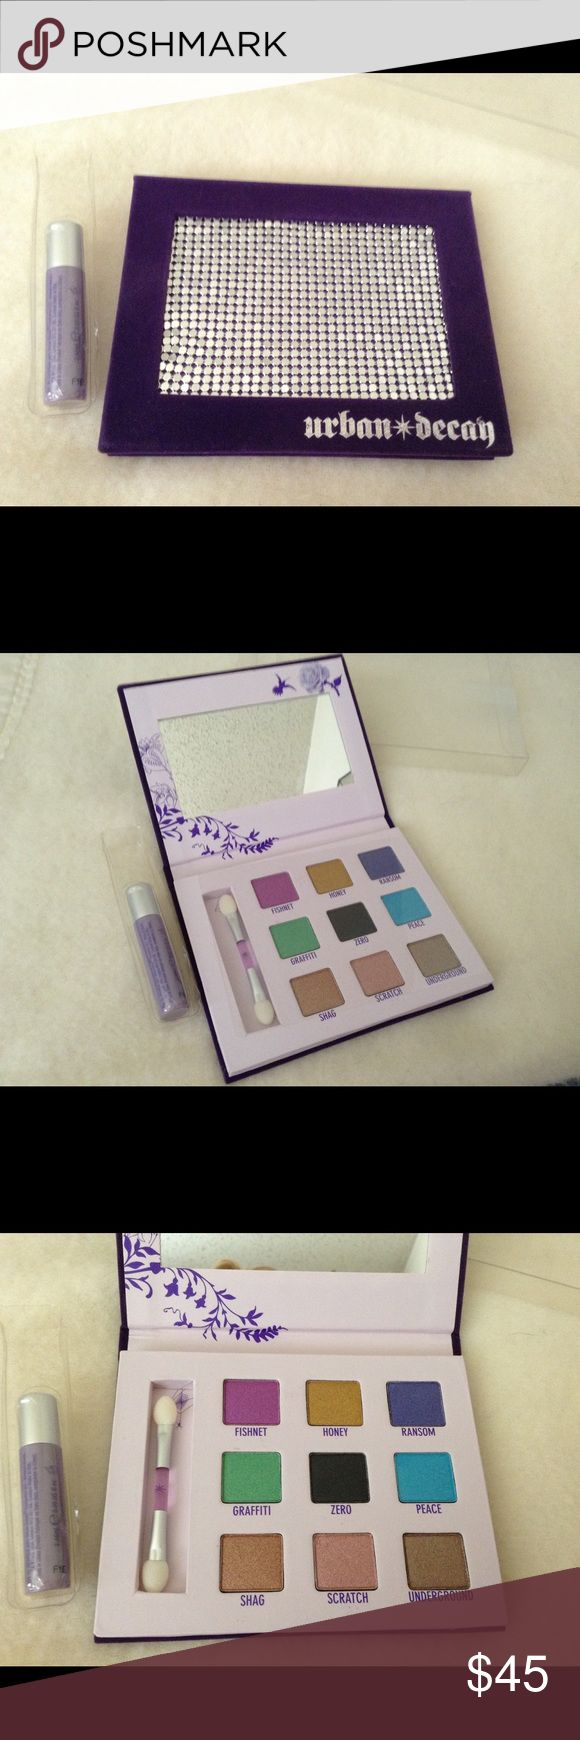 Urban Decay Deluxe Shadow Box NIB This Is A Brand New Unused Urban Decay DELUXE Shadow Box! It Has A Nice Variety Of Colors And The Box Is Gorgeous Purple Felt Or Velour And The Silver Is Like Jewelry! Perfect Gift Idea! Thanks ! Urban Decay Makeup Eyeshadow